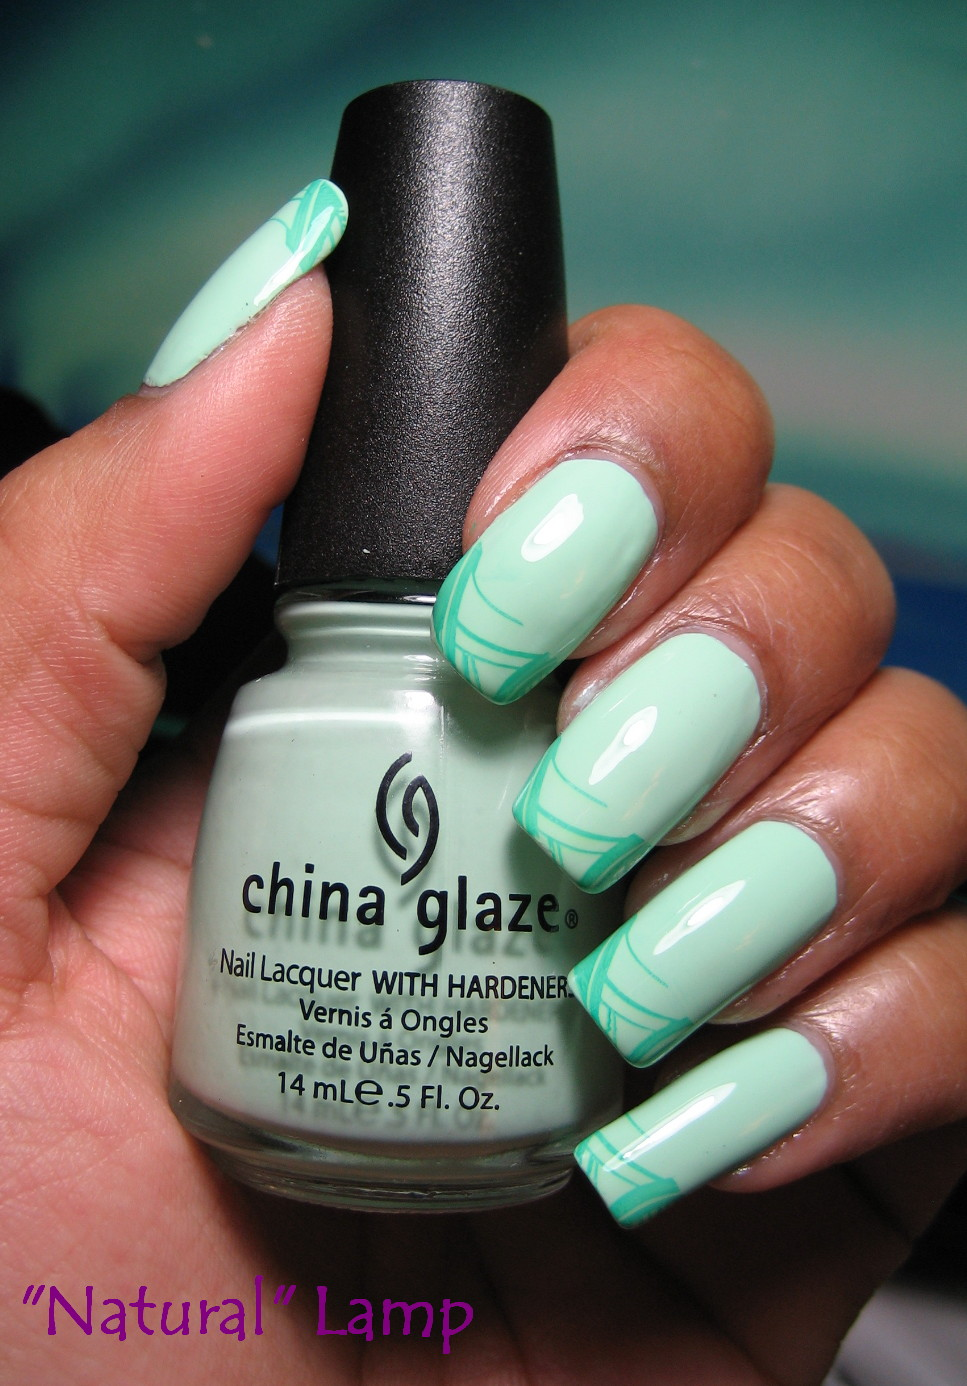 My Simple Little Pleasures Earth Day Notd China Glaze Re Fresh Mint M72